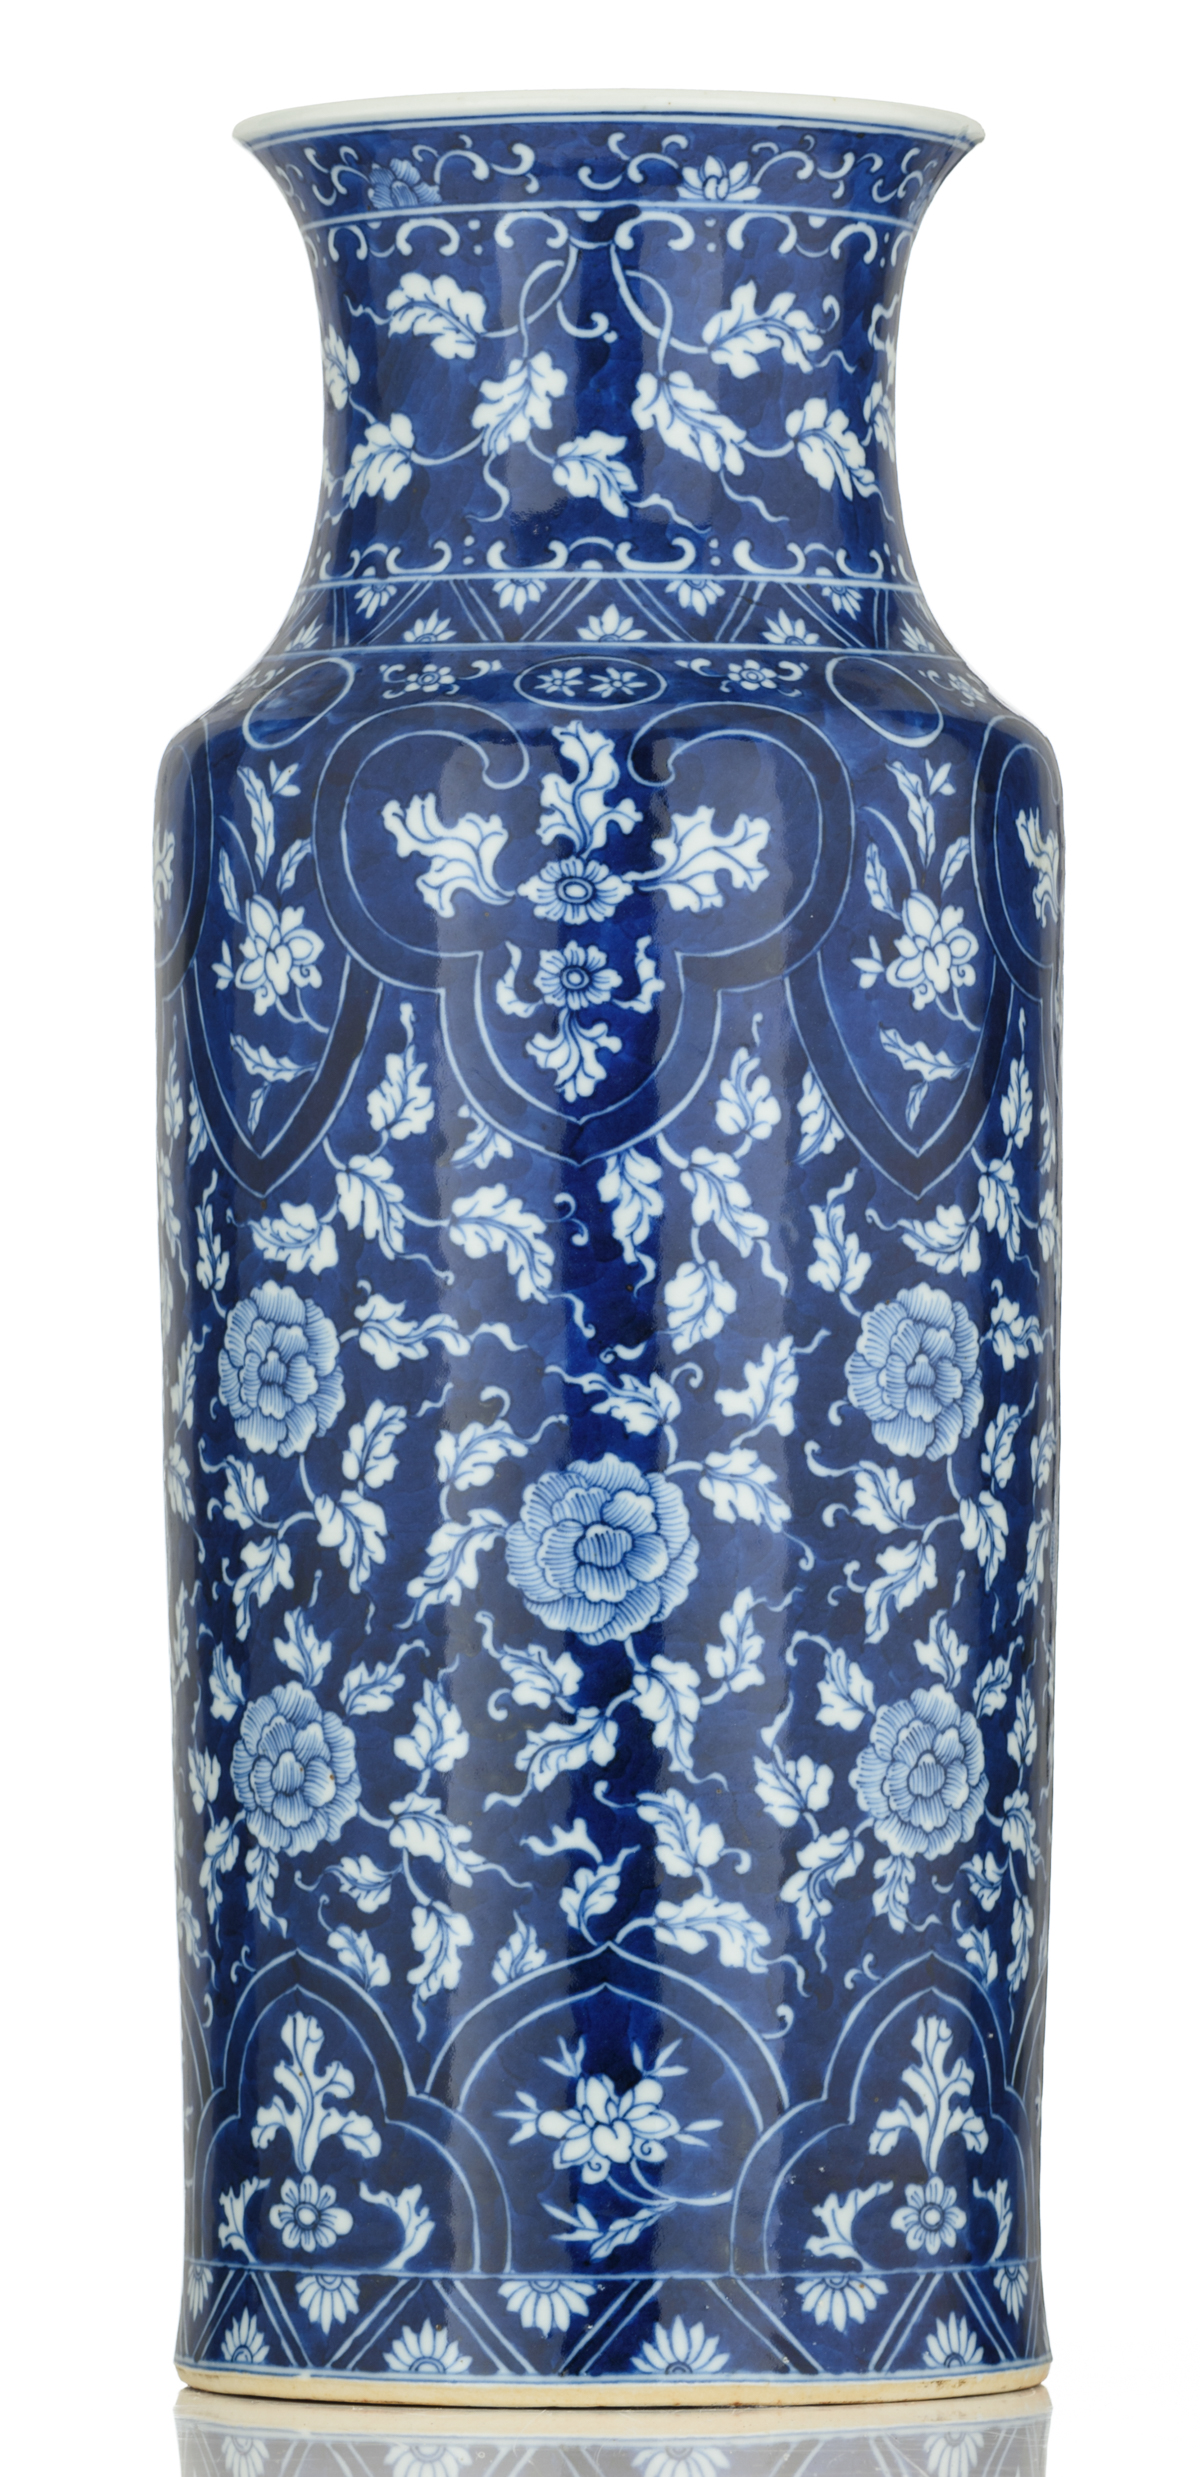 Lot 52 - A blue and white floral decorated porcelain rouleau vase, 19thC, H 47,7 cm